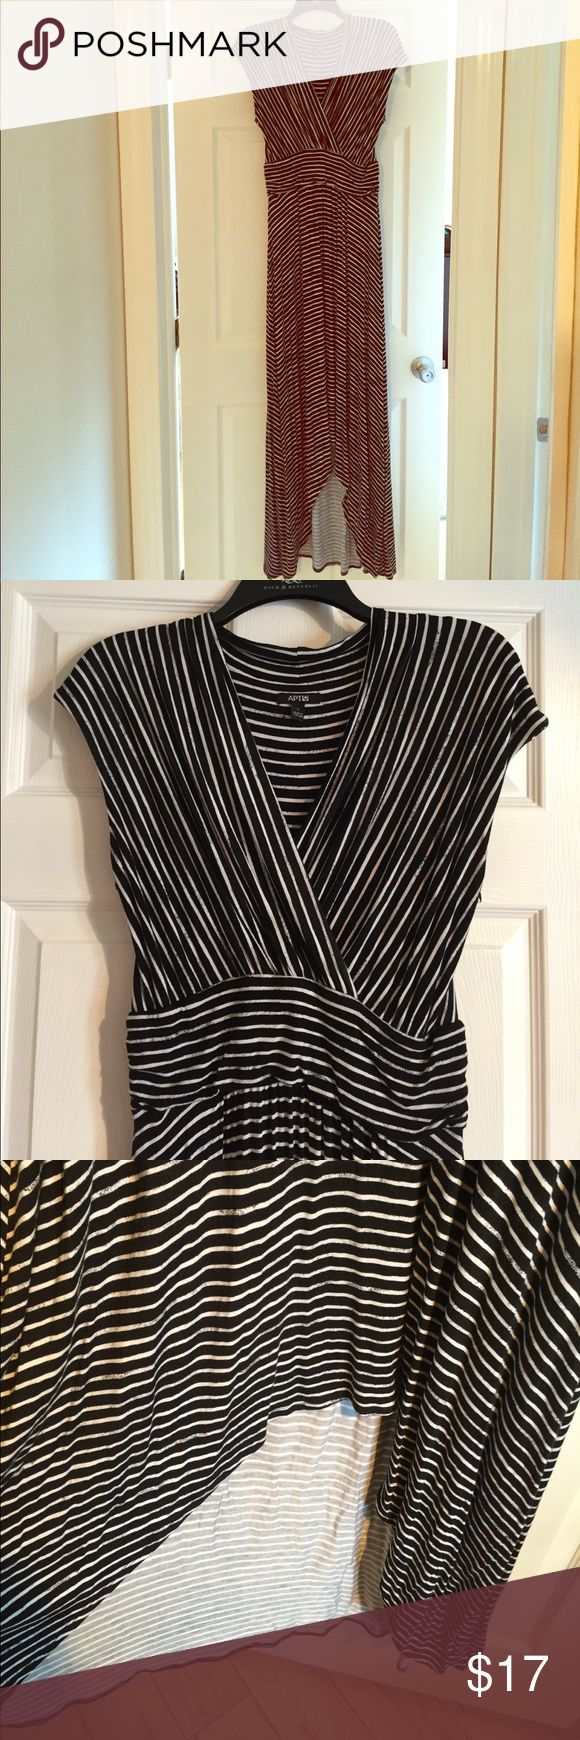 High-low dress Black and white striped Apt 9 dress worn only once! Back of dress is ankle length and front is tea length. Soft cotton perfect for summer Apt. 9 Dresses High Low